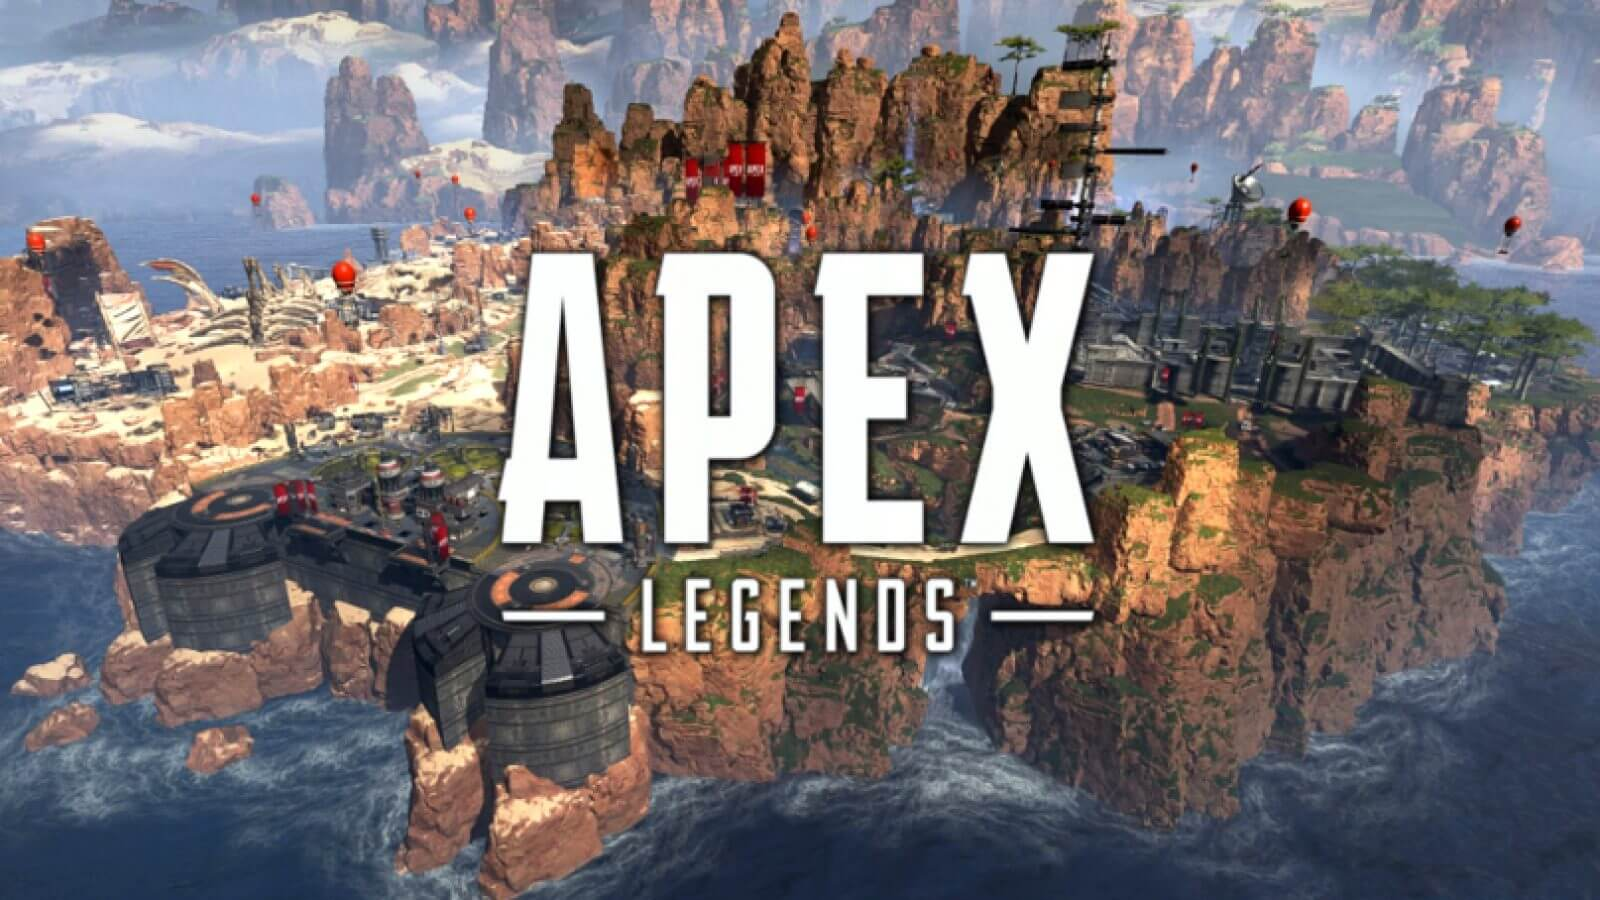 Apex Legends: de nieuwste hit van Electronic Arts